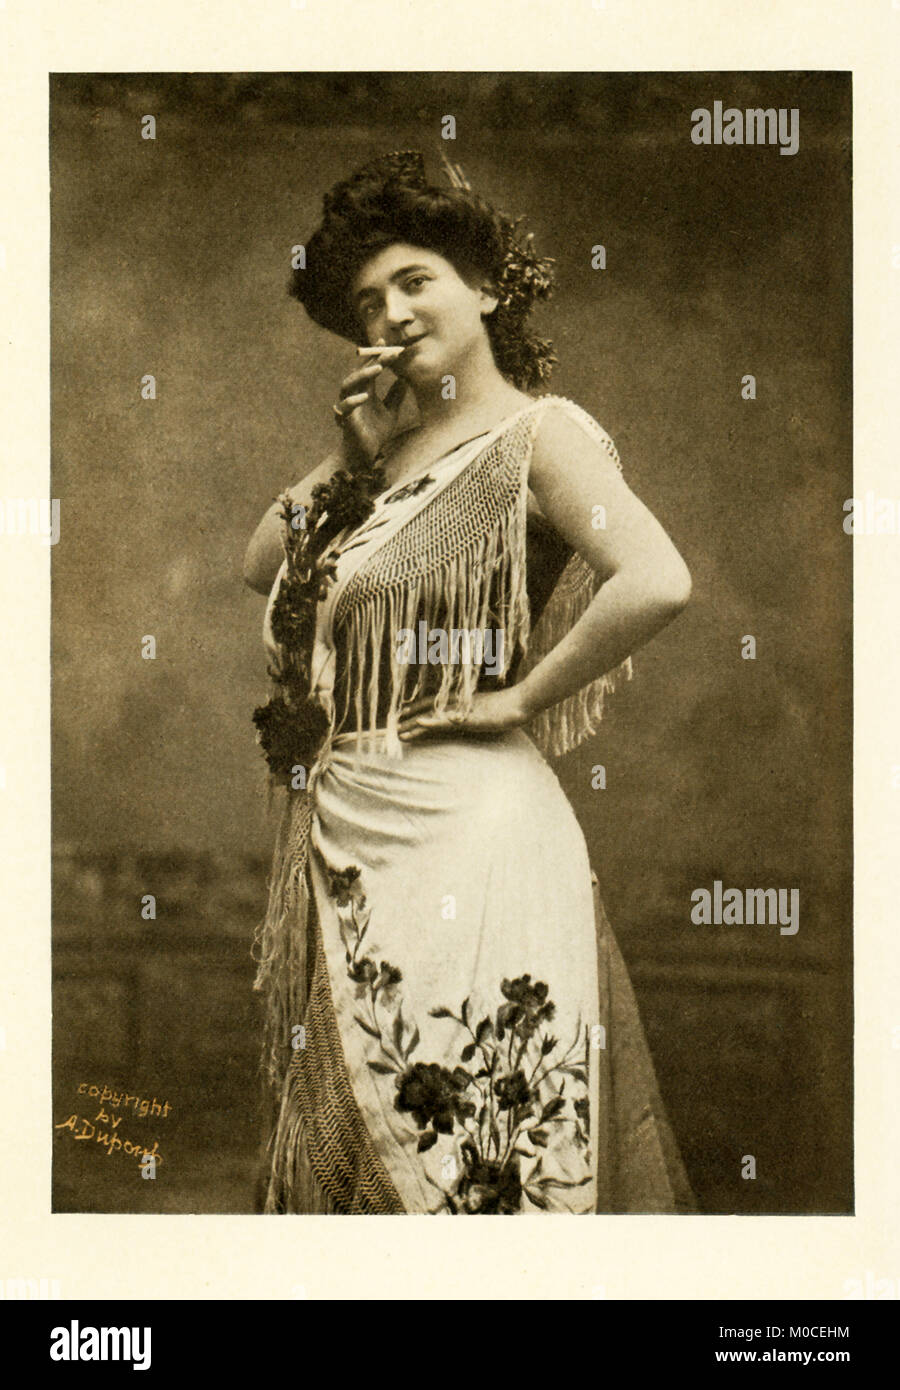 This photo shows the opera singer Emma Calve in the title role of Bizet's Carmen. She was born in 1866 in Decazeville, Stock Photo